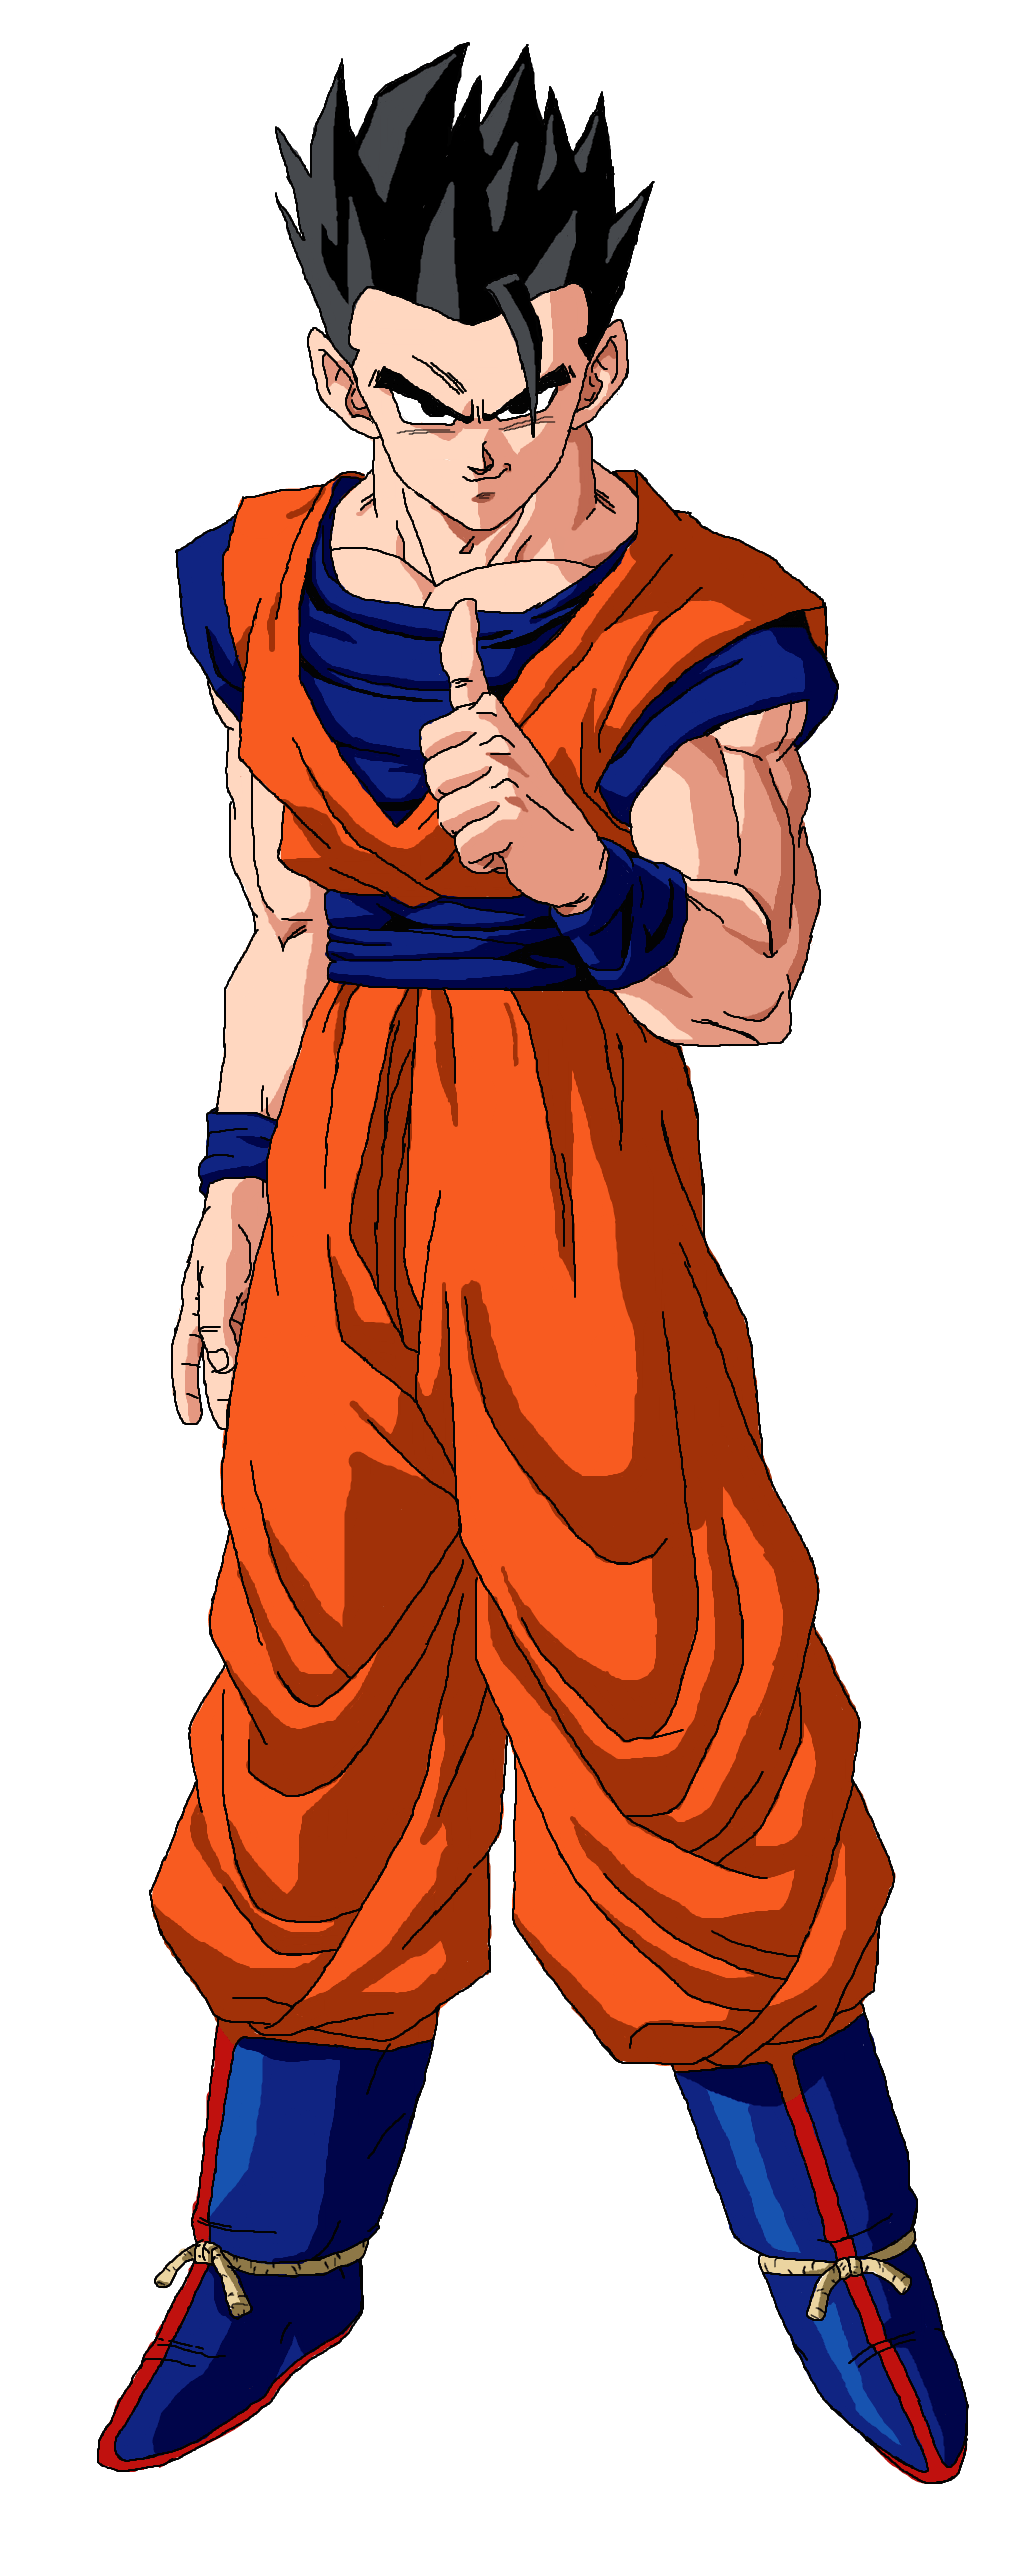 1024x2563 Ultimate Gohan Wallpapers - Shared by Faye | Szzljy